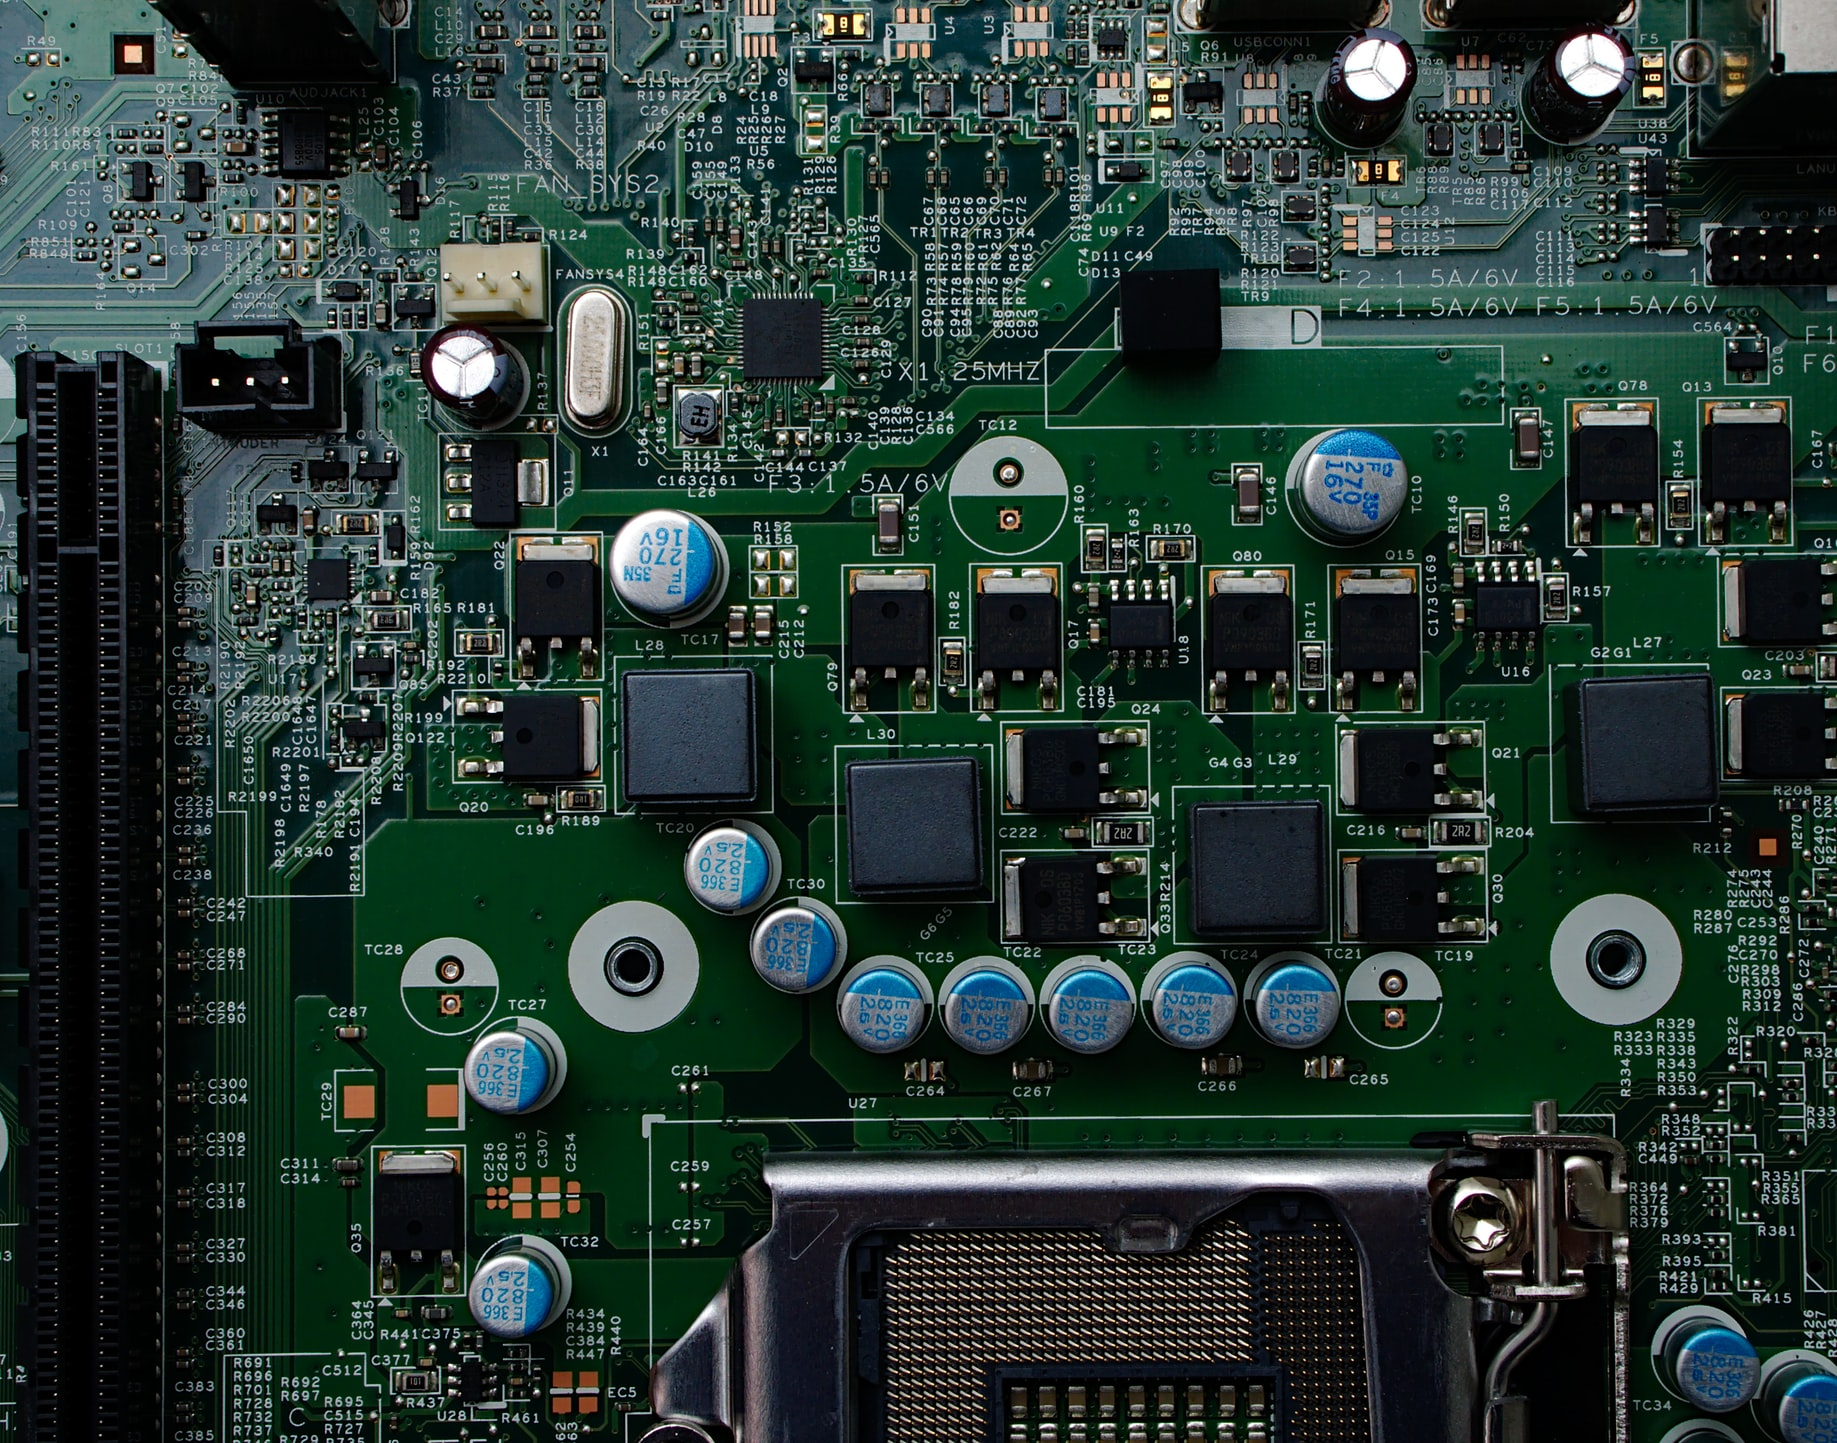 How to Install Motherboard Drivers without CD Drive